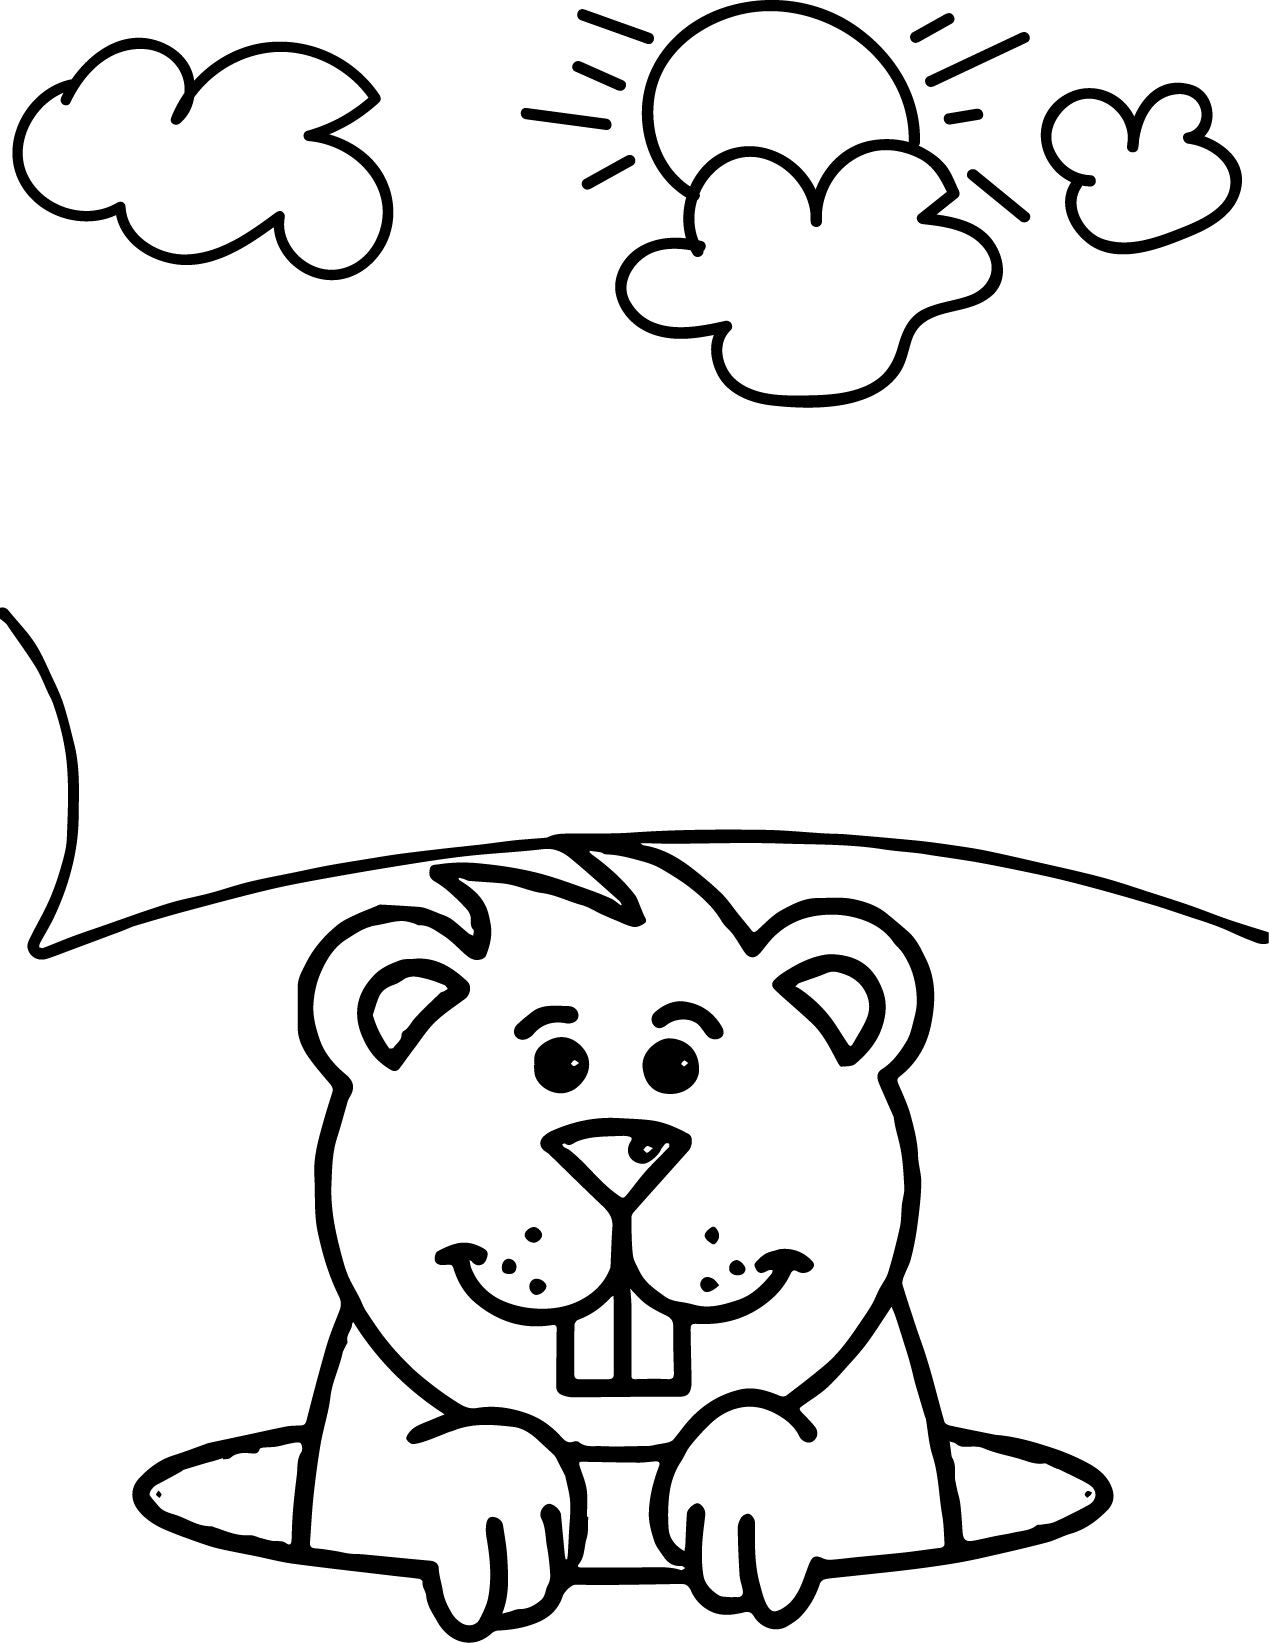 This is a graphic of Smart Groundhog Day Coloring Pages Free Printable